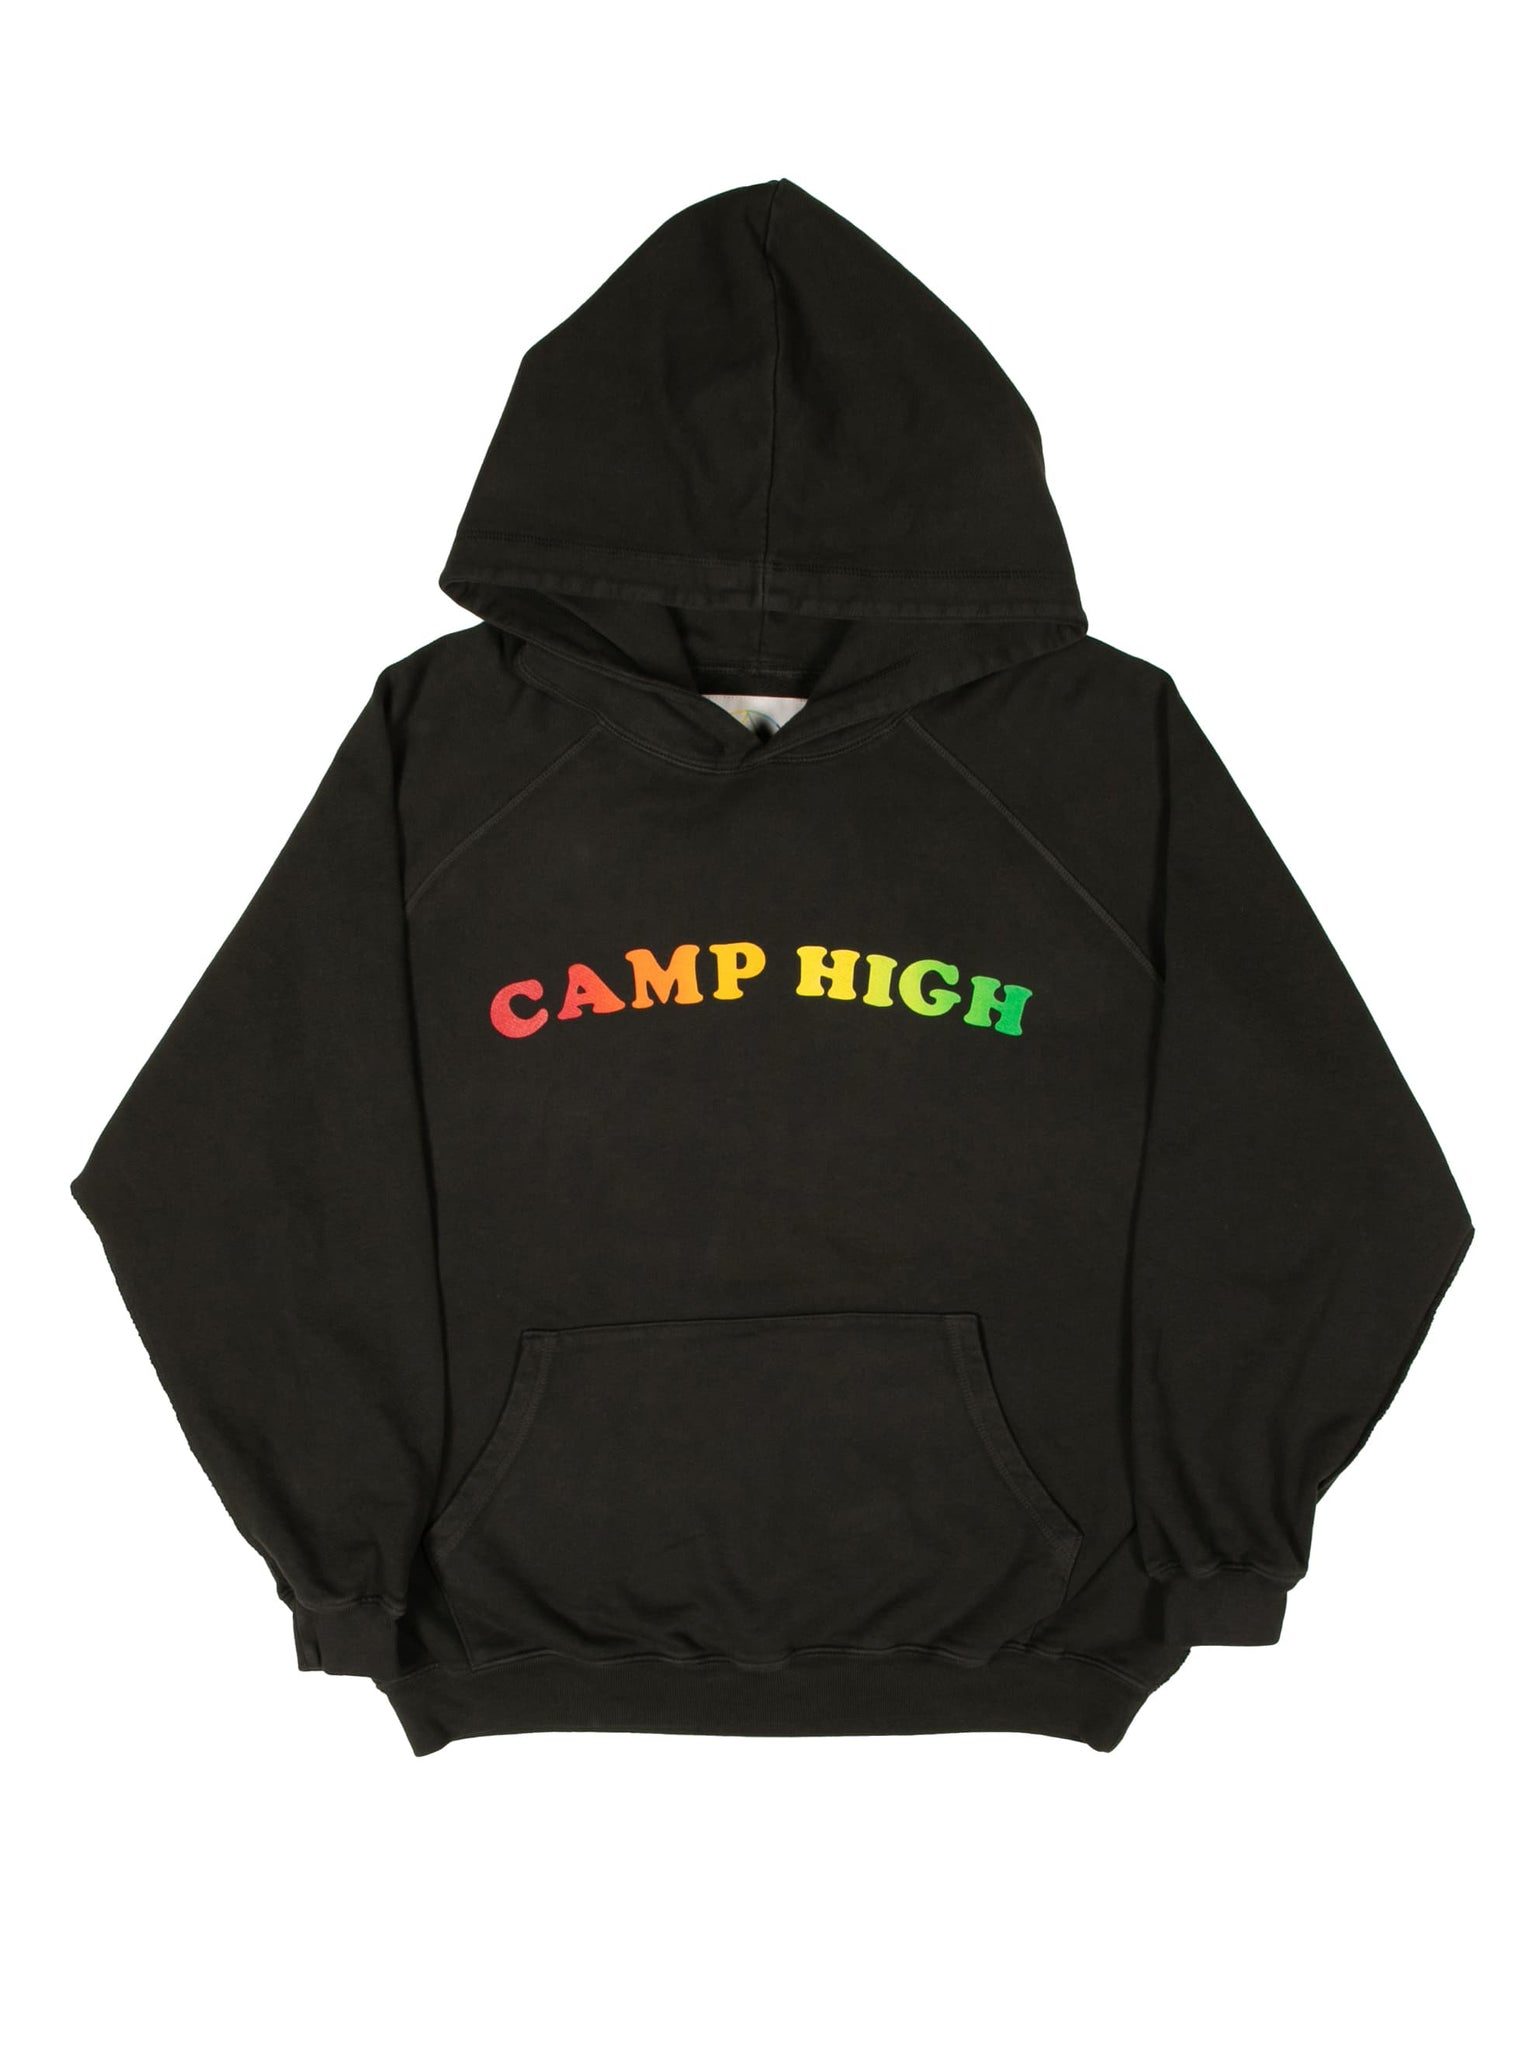 Camp High Vintage Black / Small Counselor Hoody